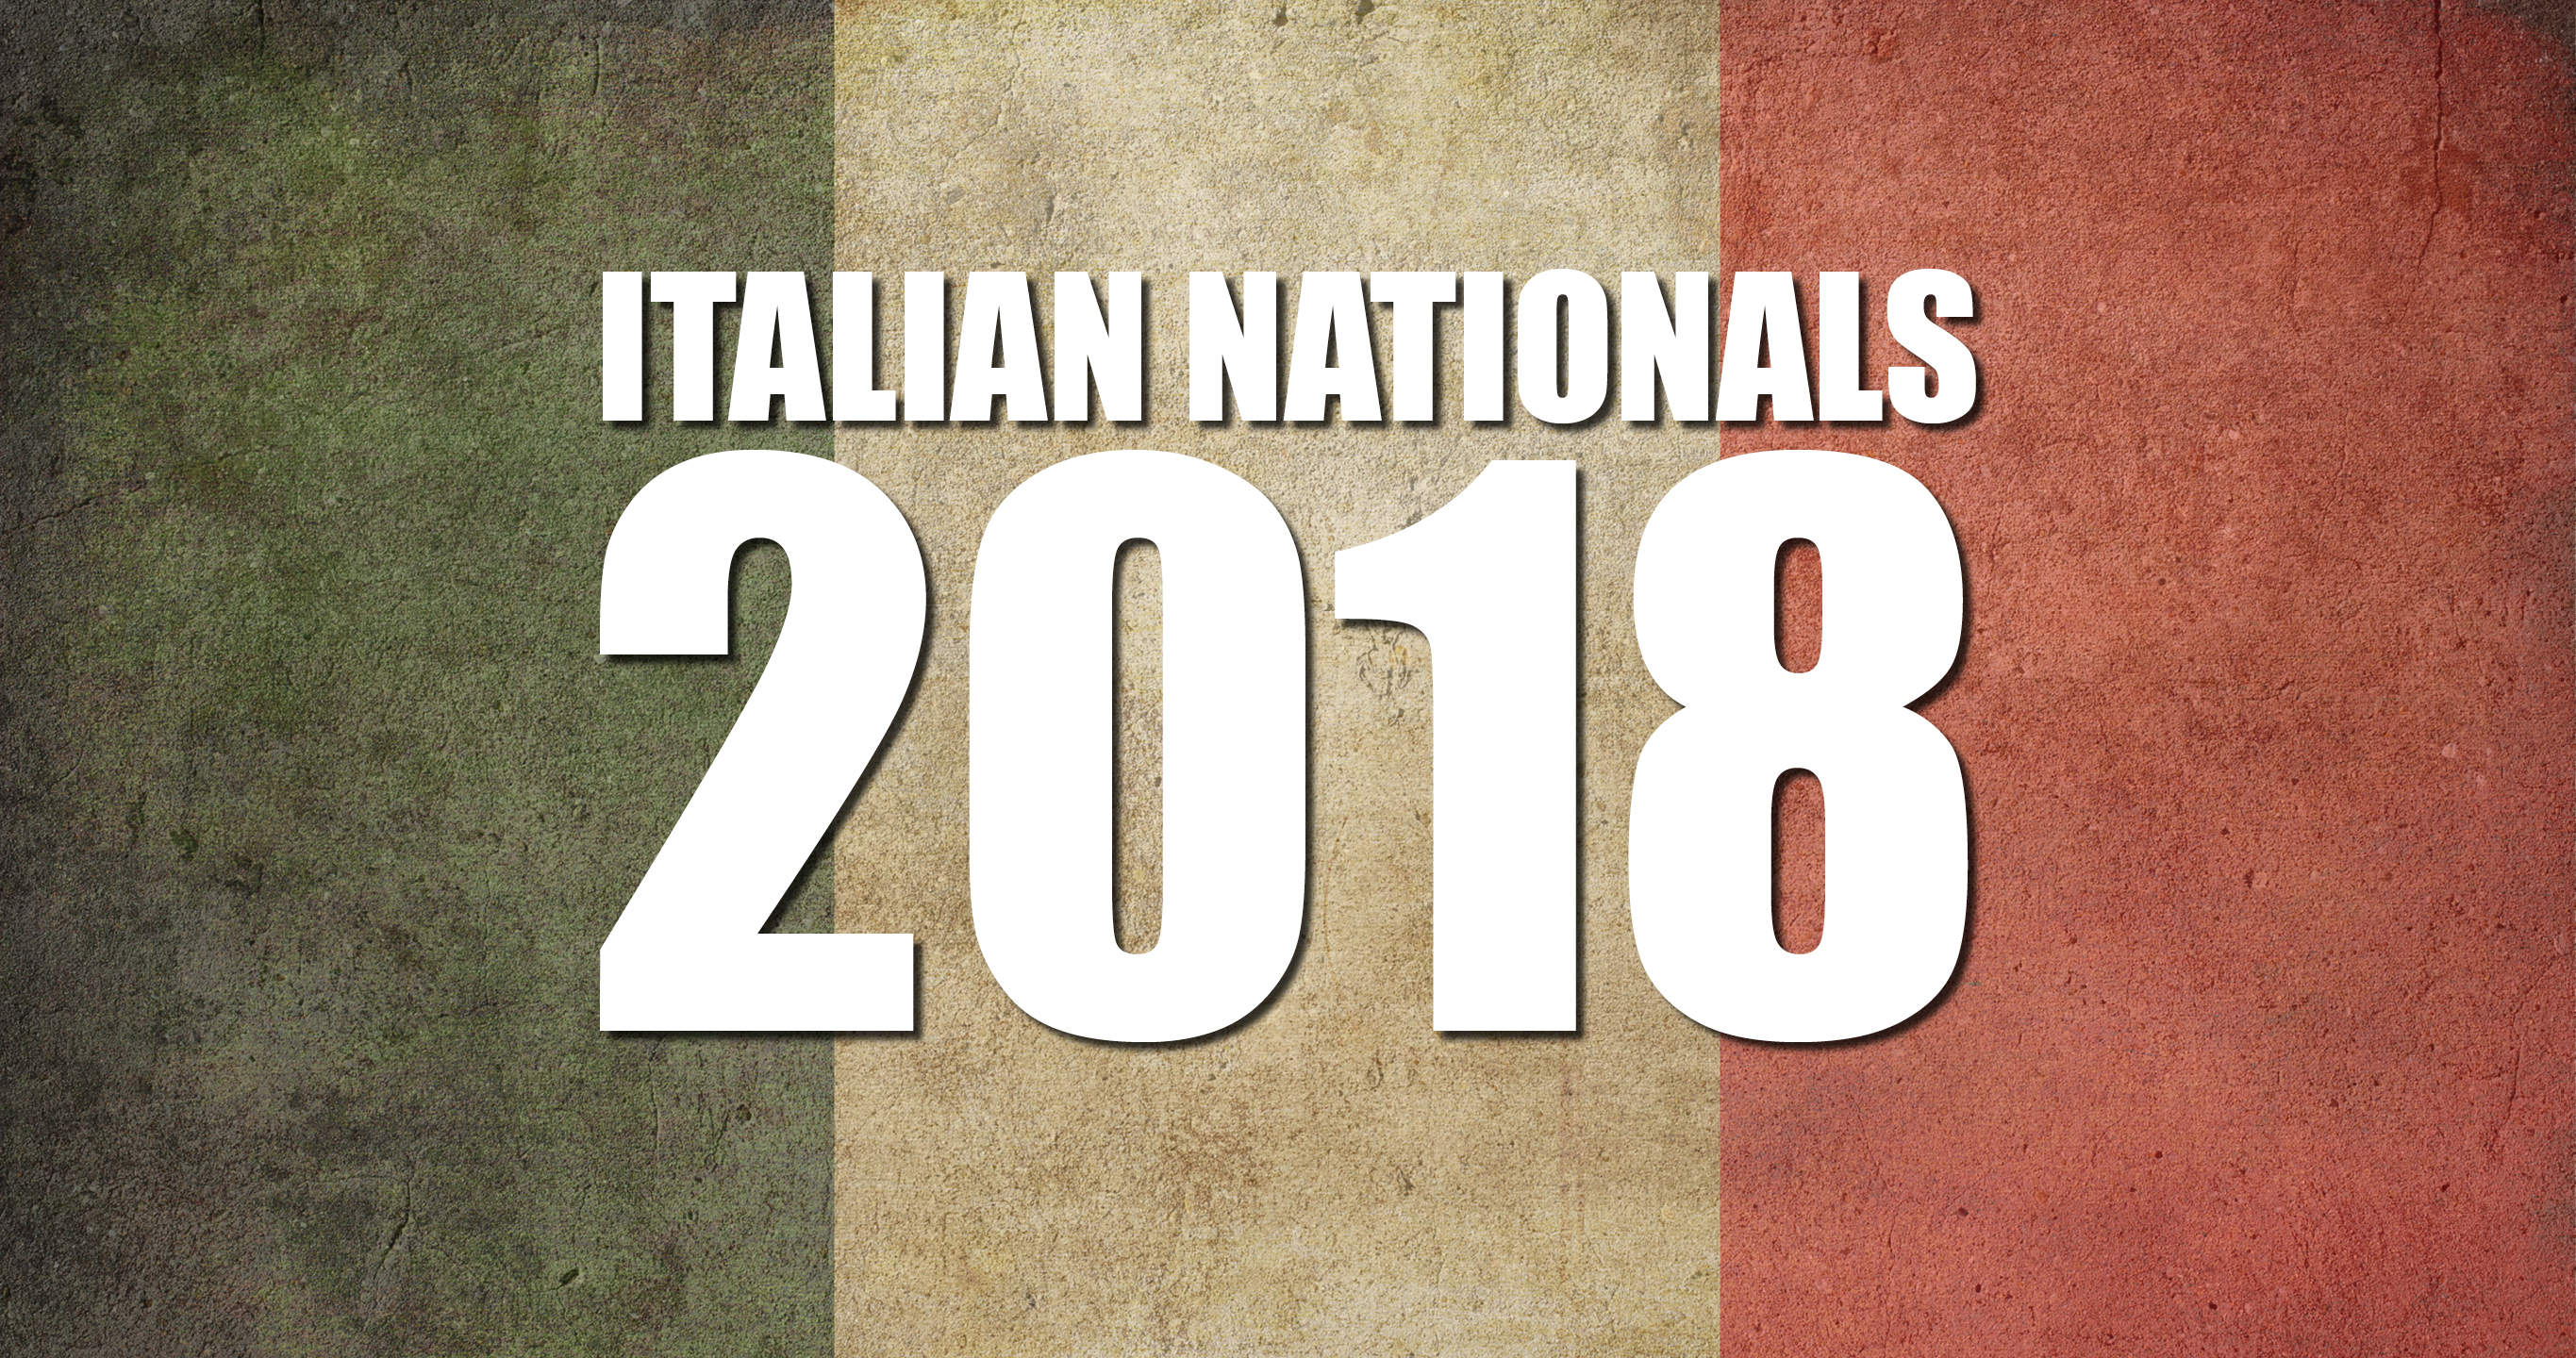 Italian Nationals 2018 - Tournament Report